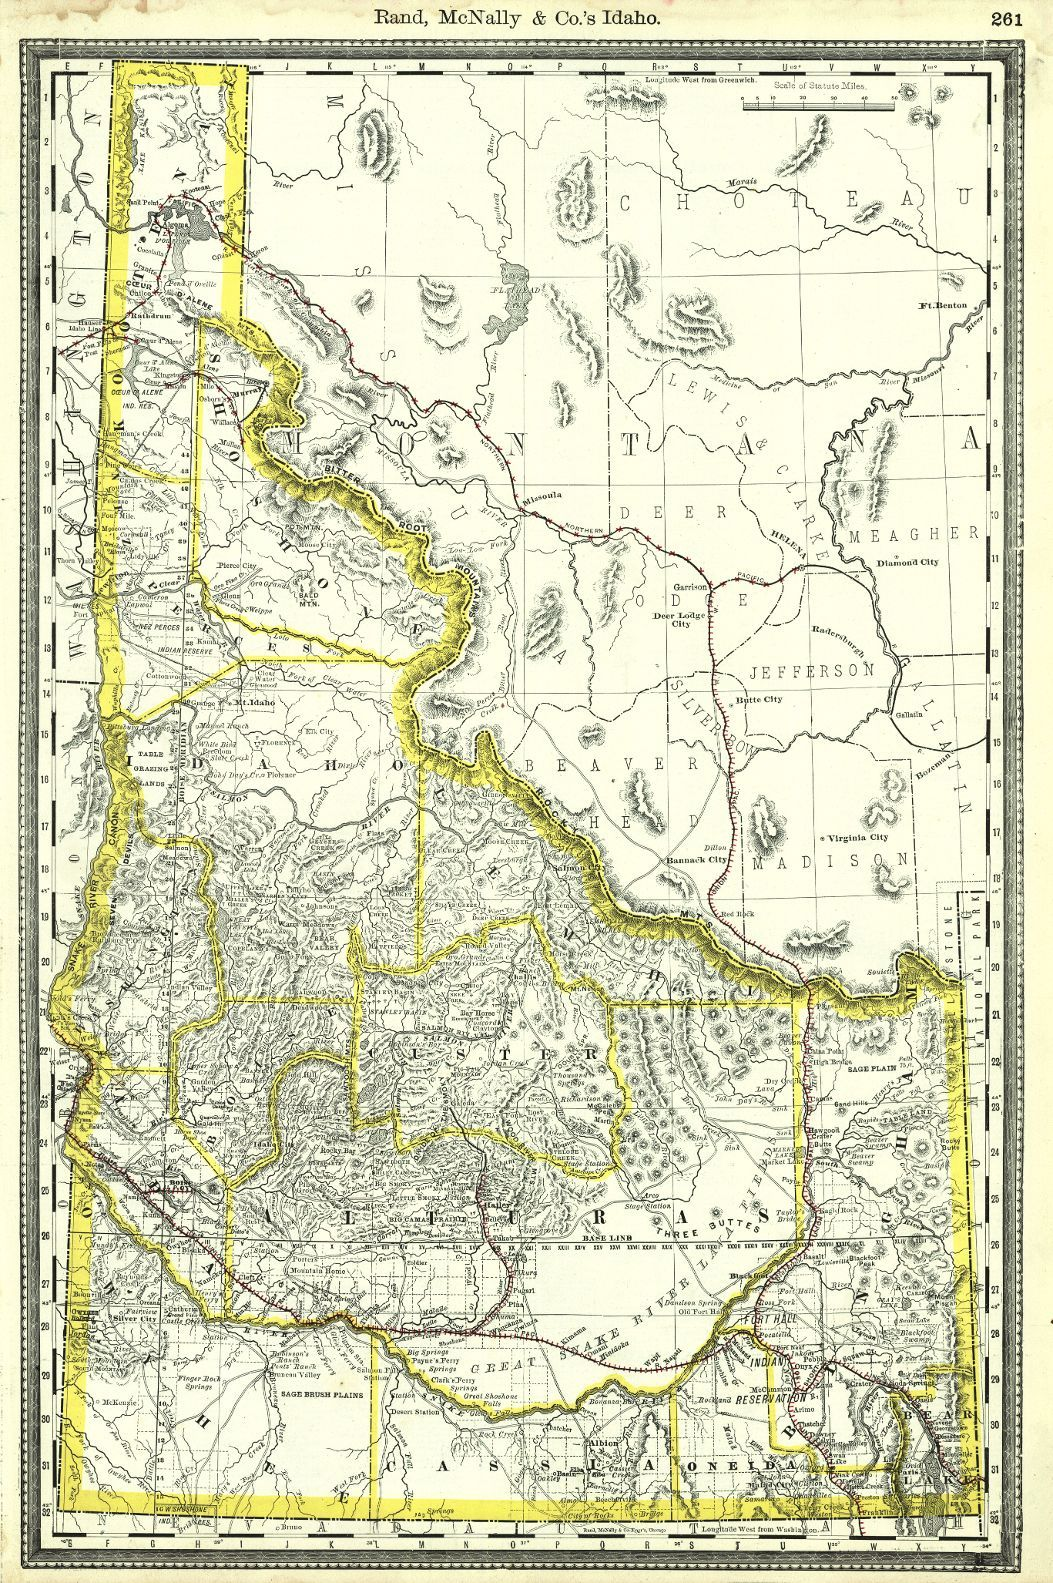 Map Antique Rand McNally And Co s Idaho c1889 Map from the